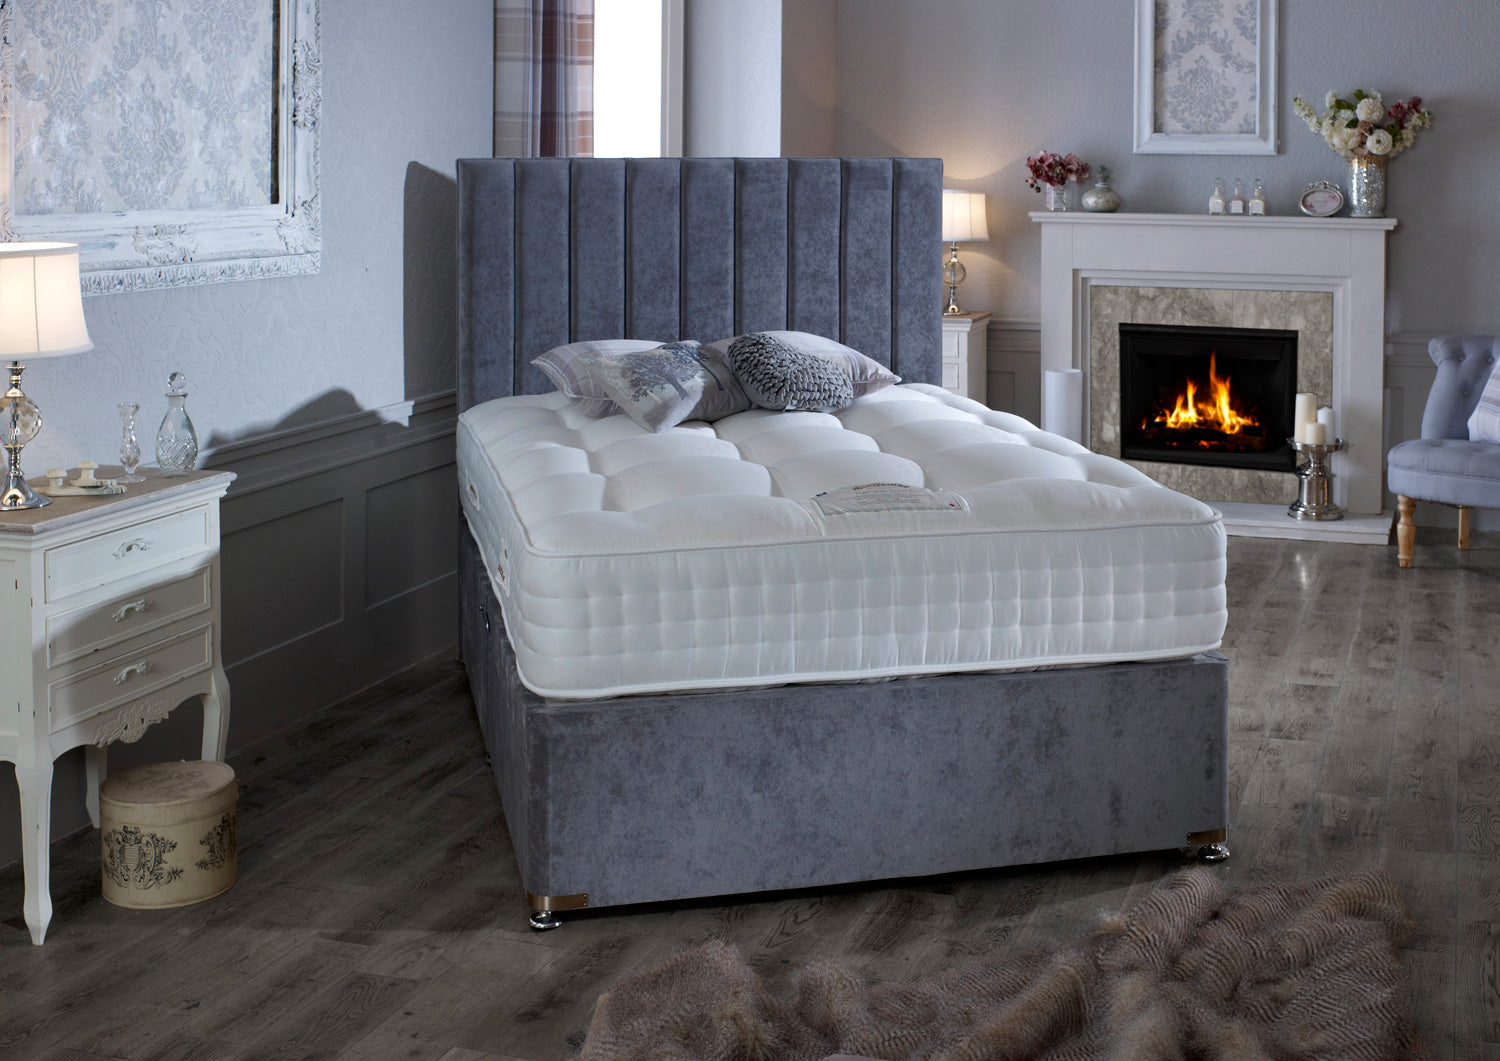 Natural 2000 Silver Divan Bed 30cm deep mattress (medium firm)